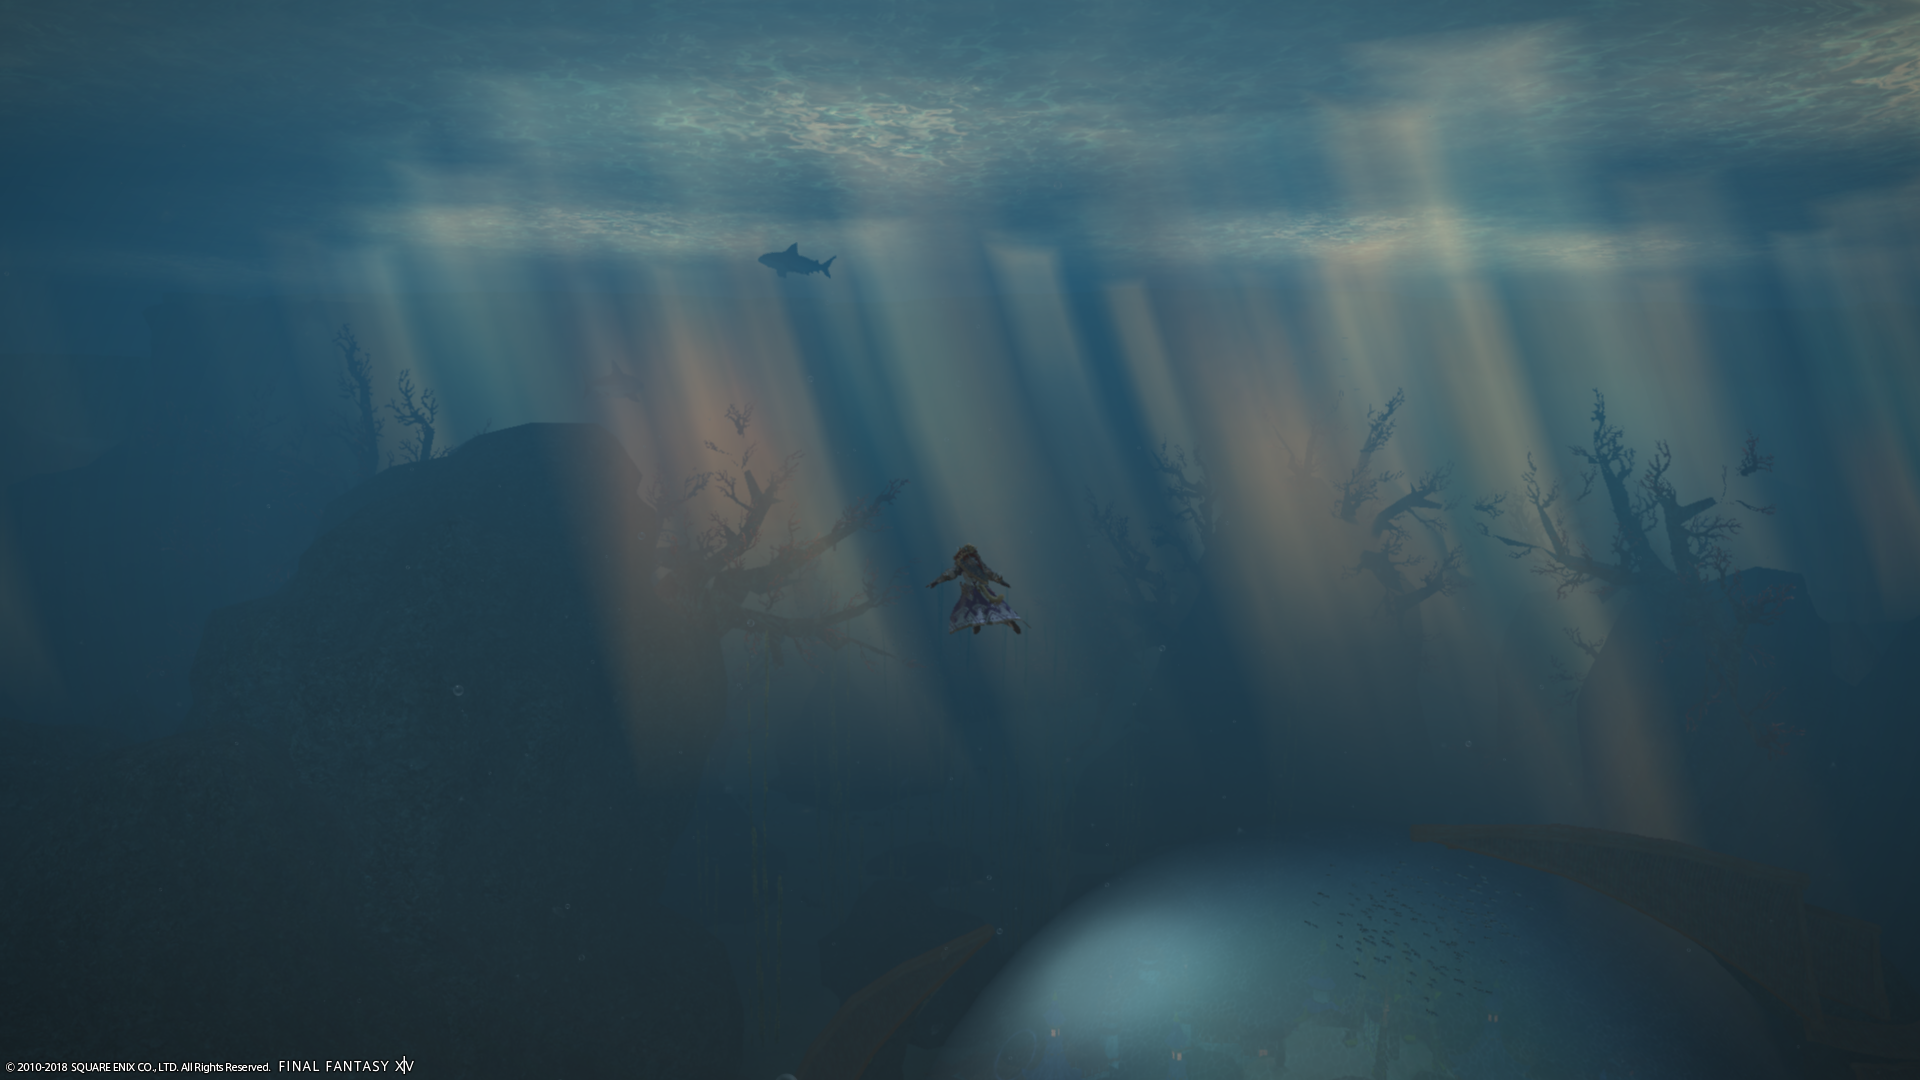 Under water with sunbeams